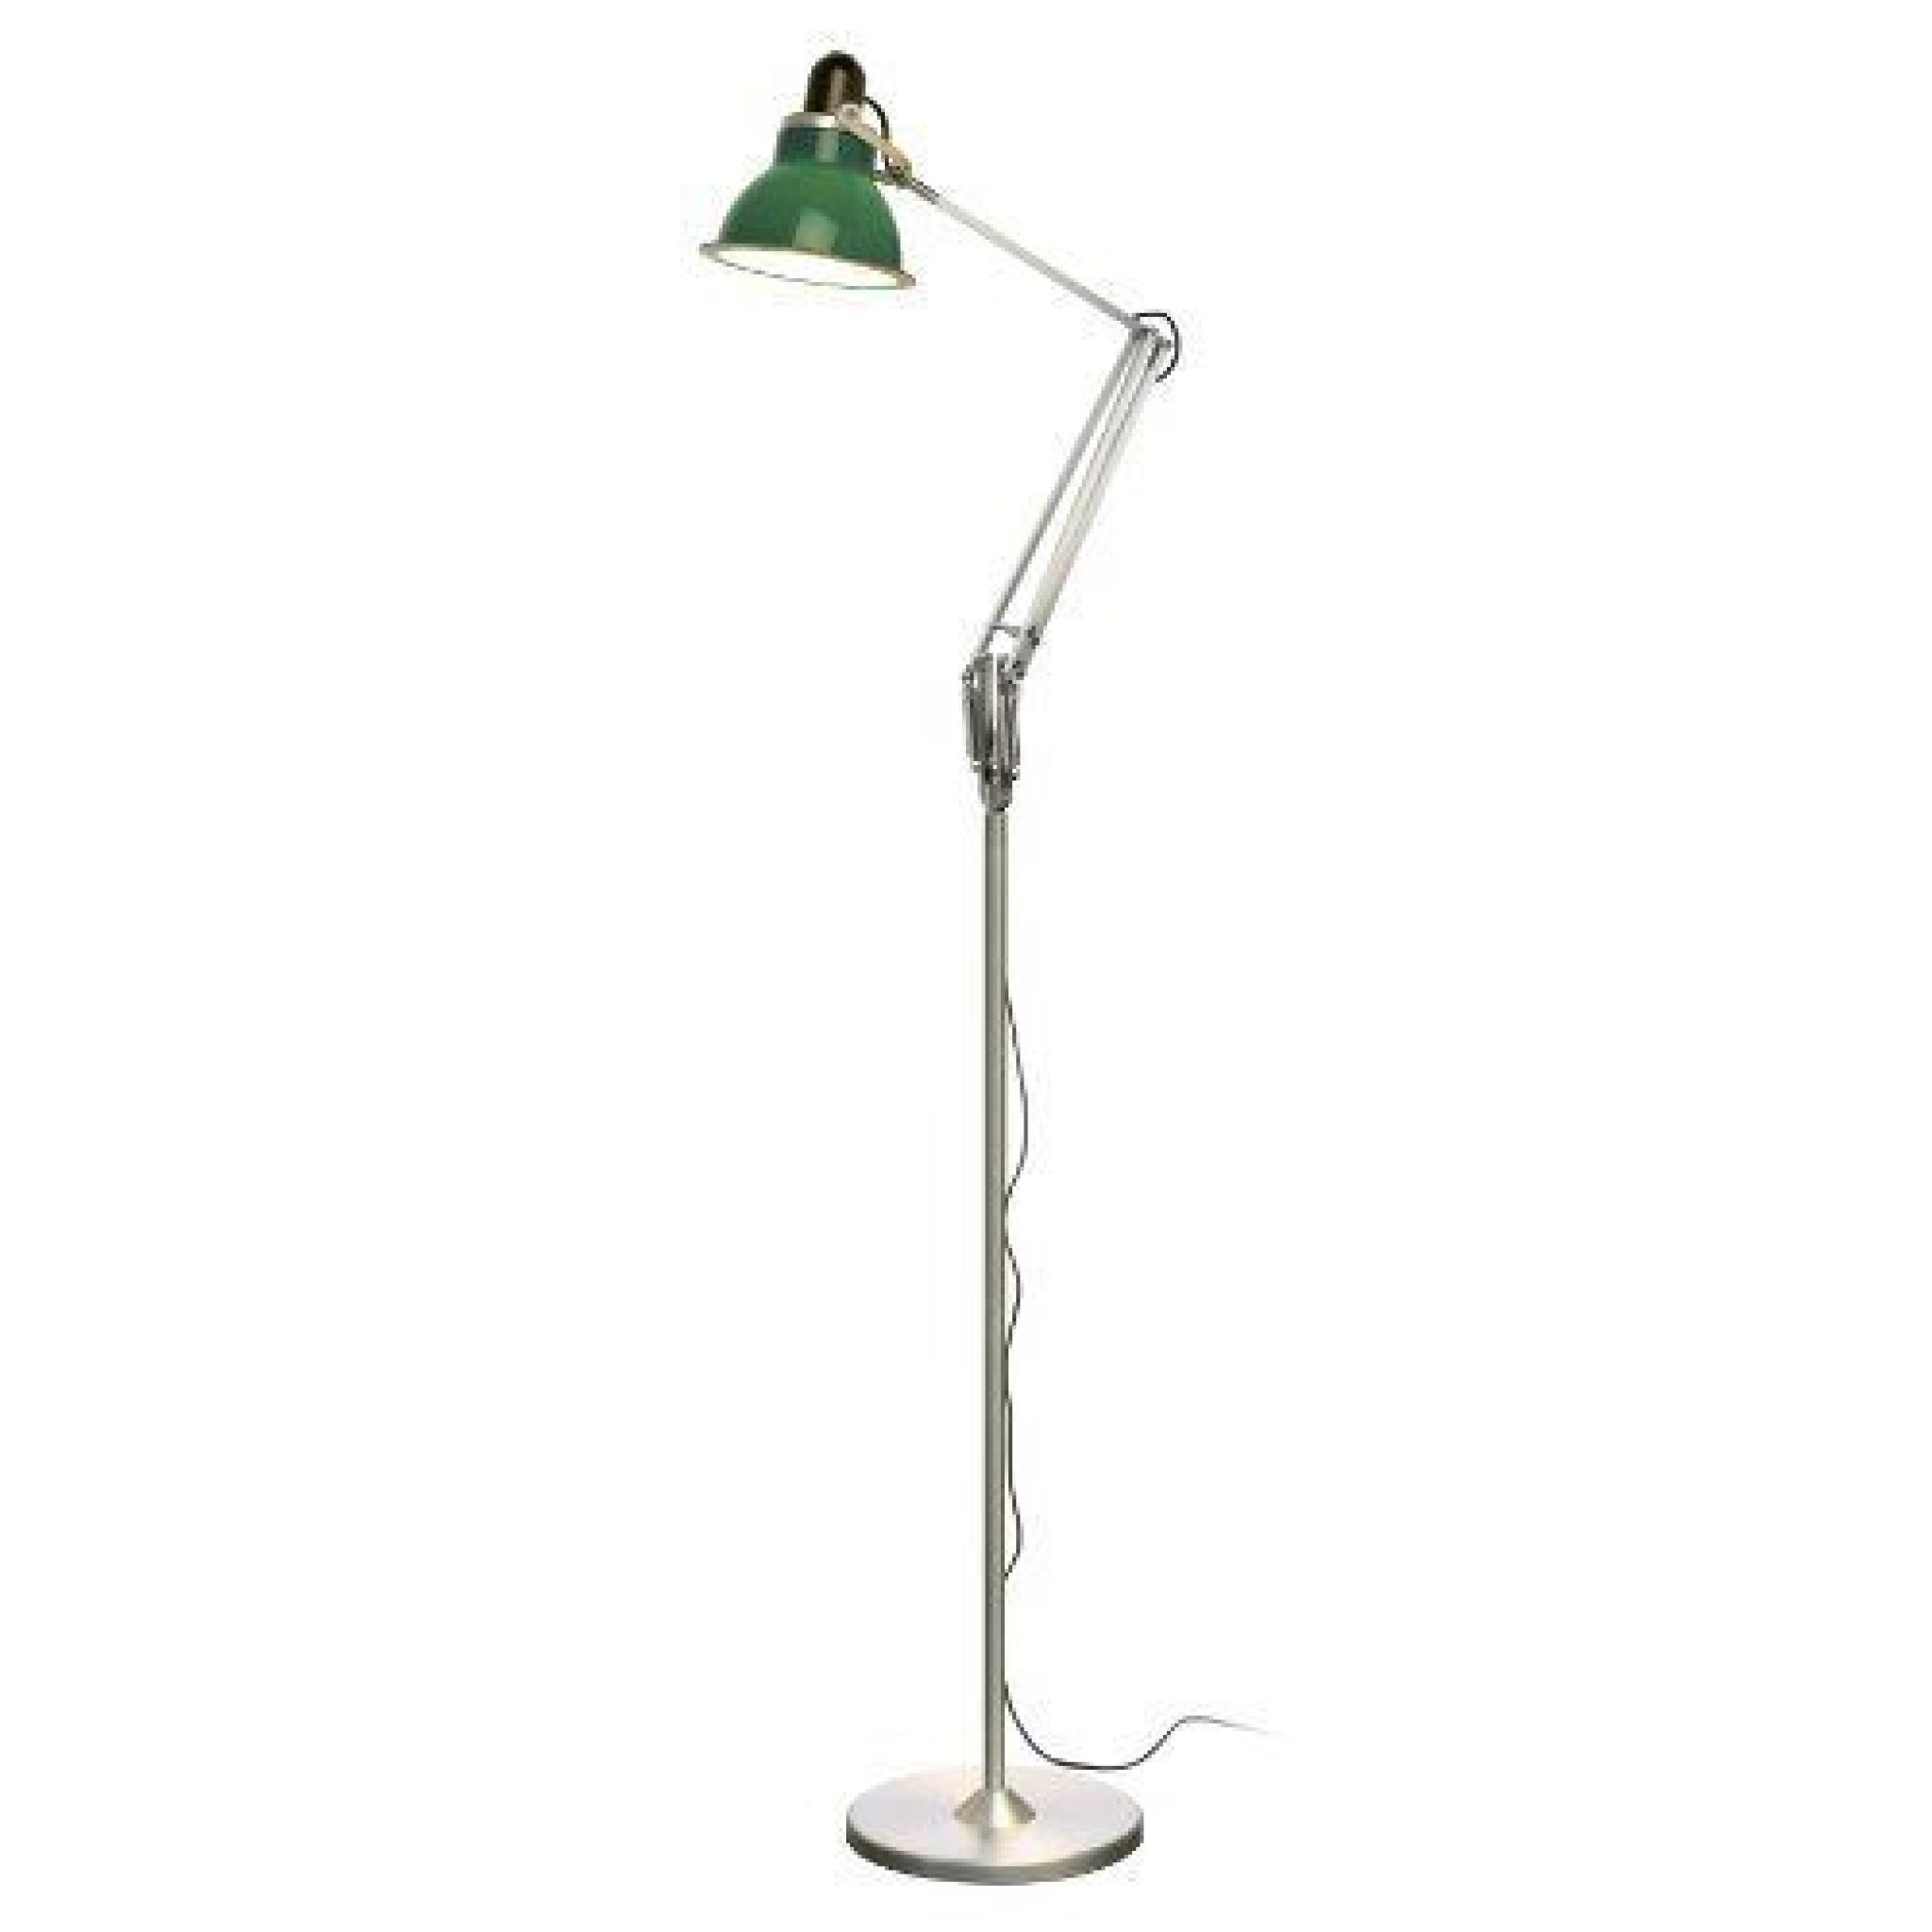 Anglepoise 30496 Lampadaire Type 1228 15 W E27 …